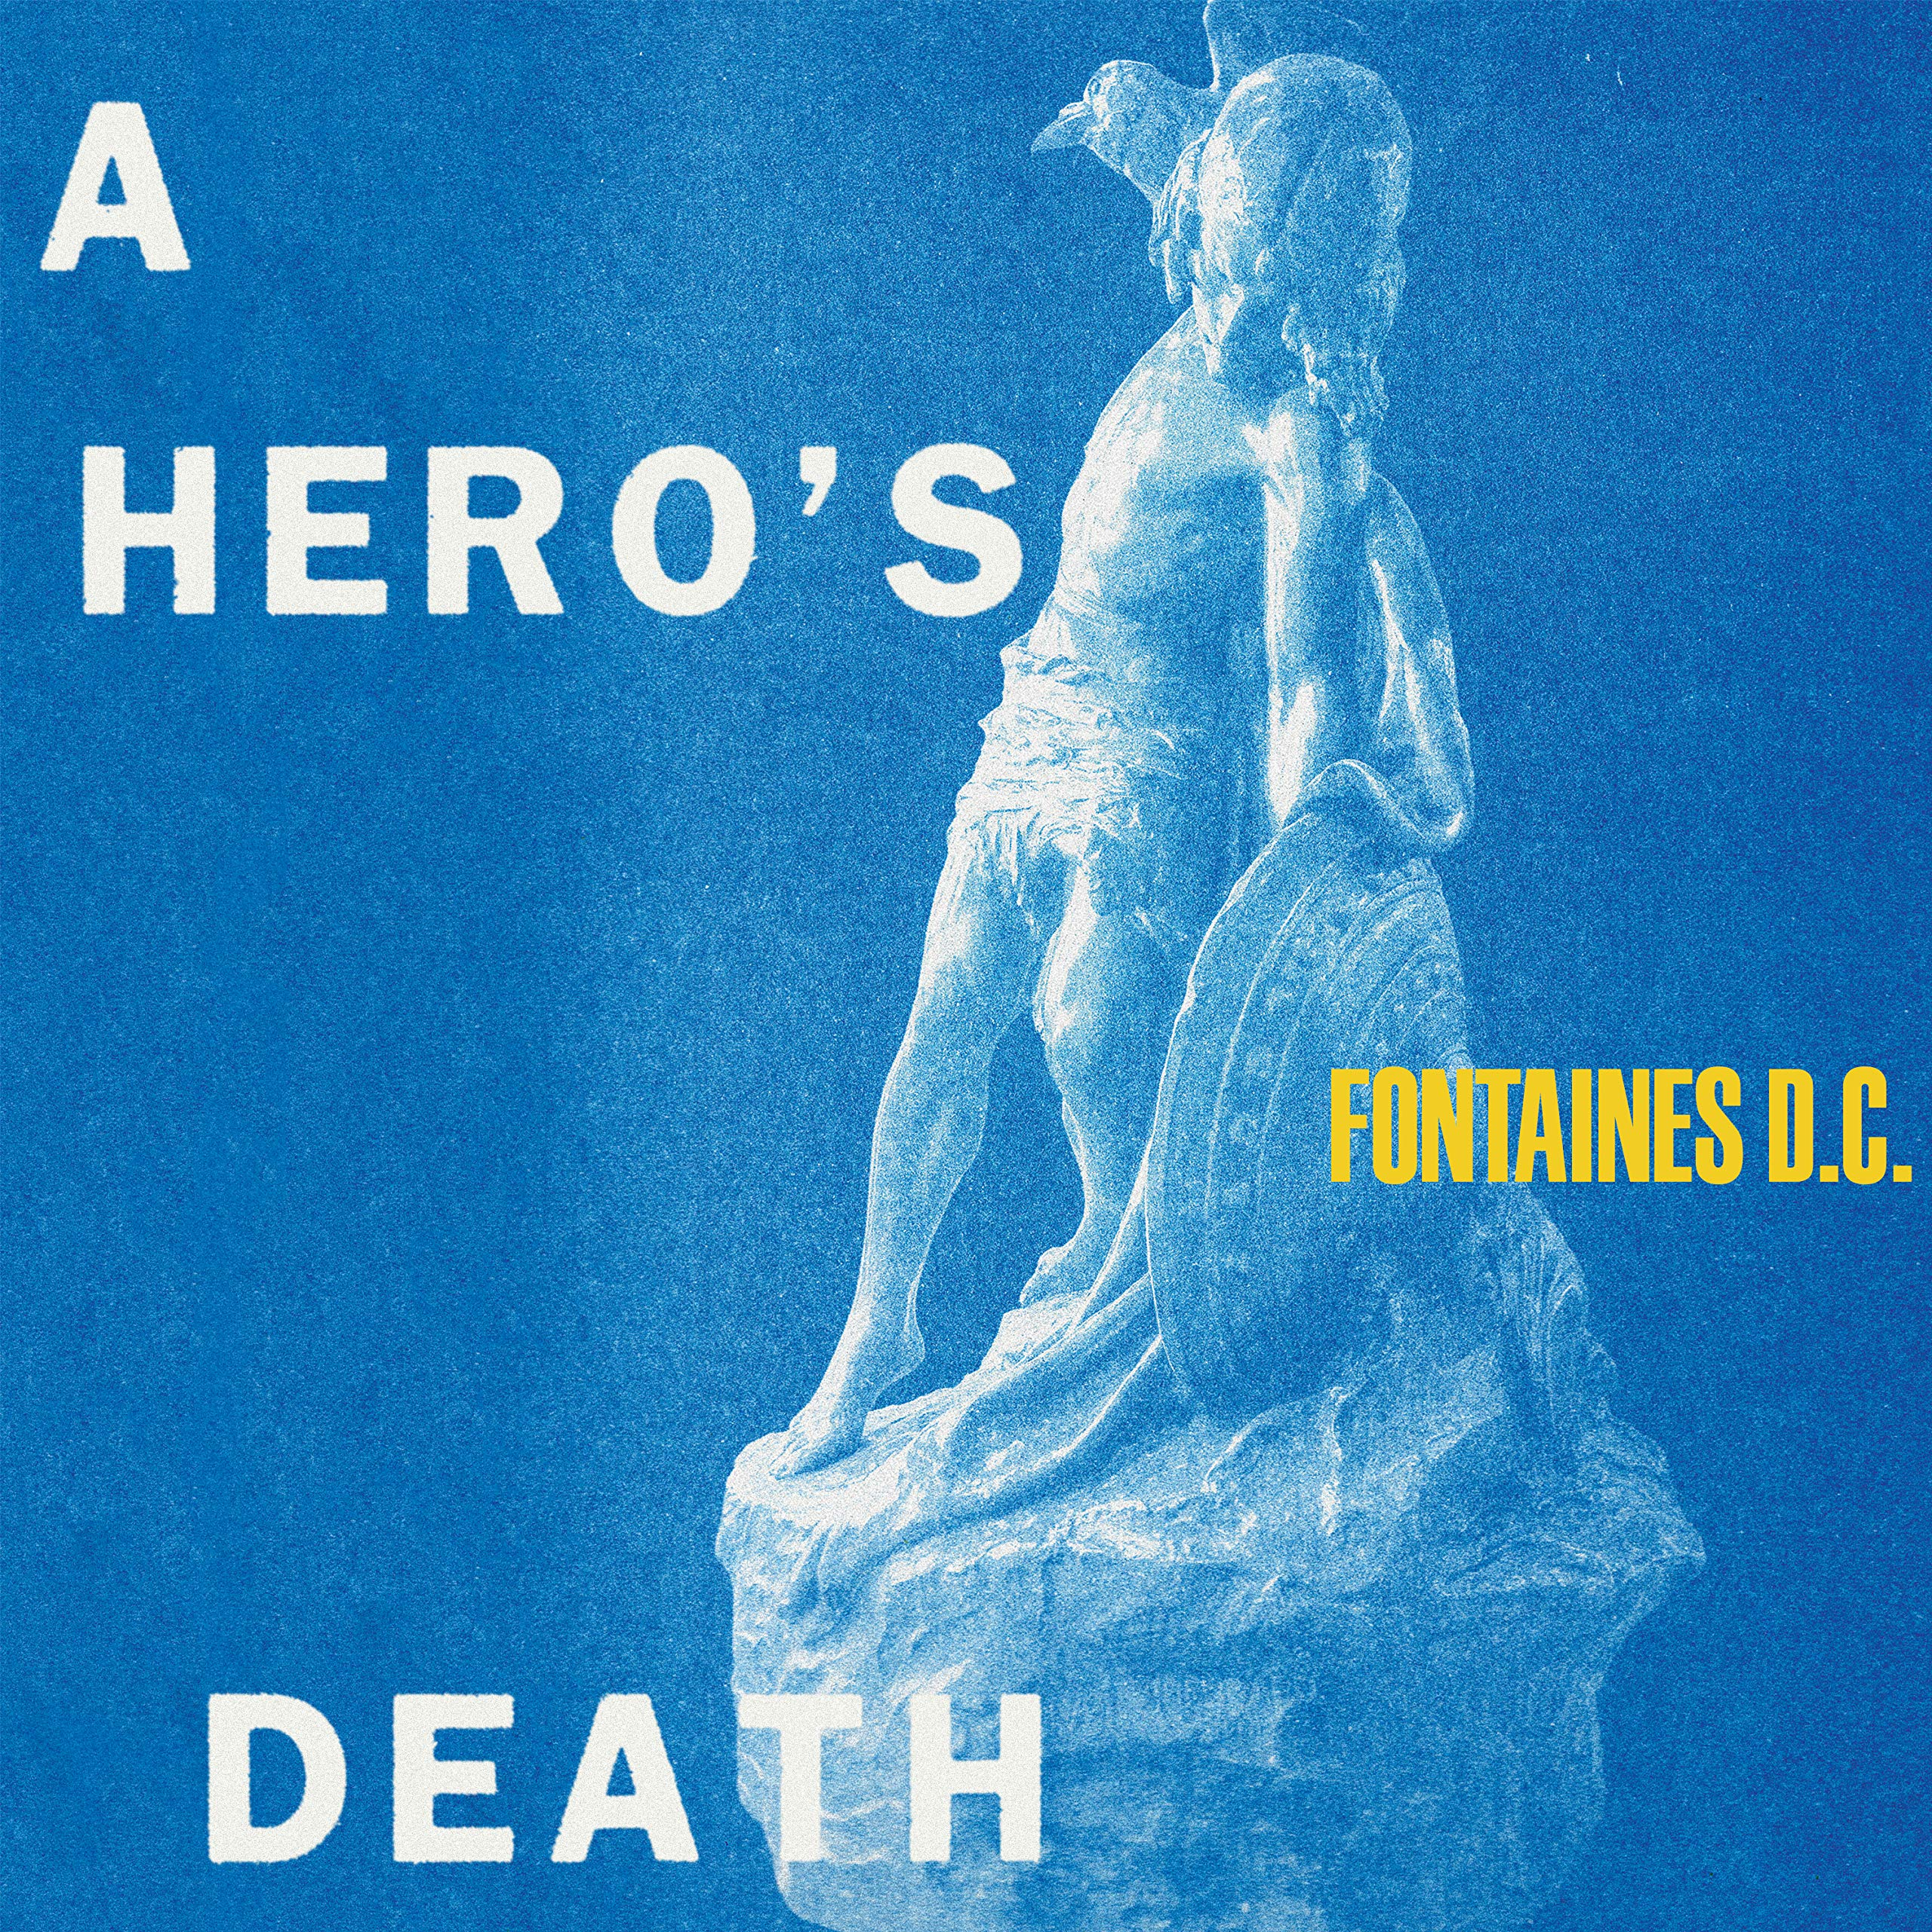 Fontaines D.C. - A Hero's Death (2020) [FLAC] Download